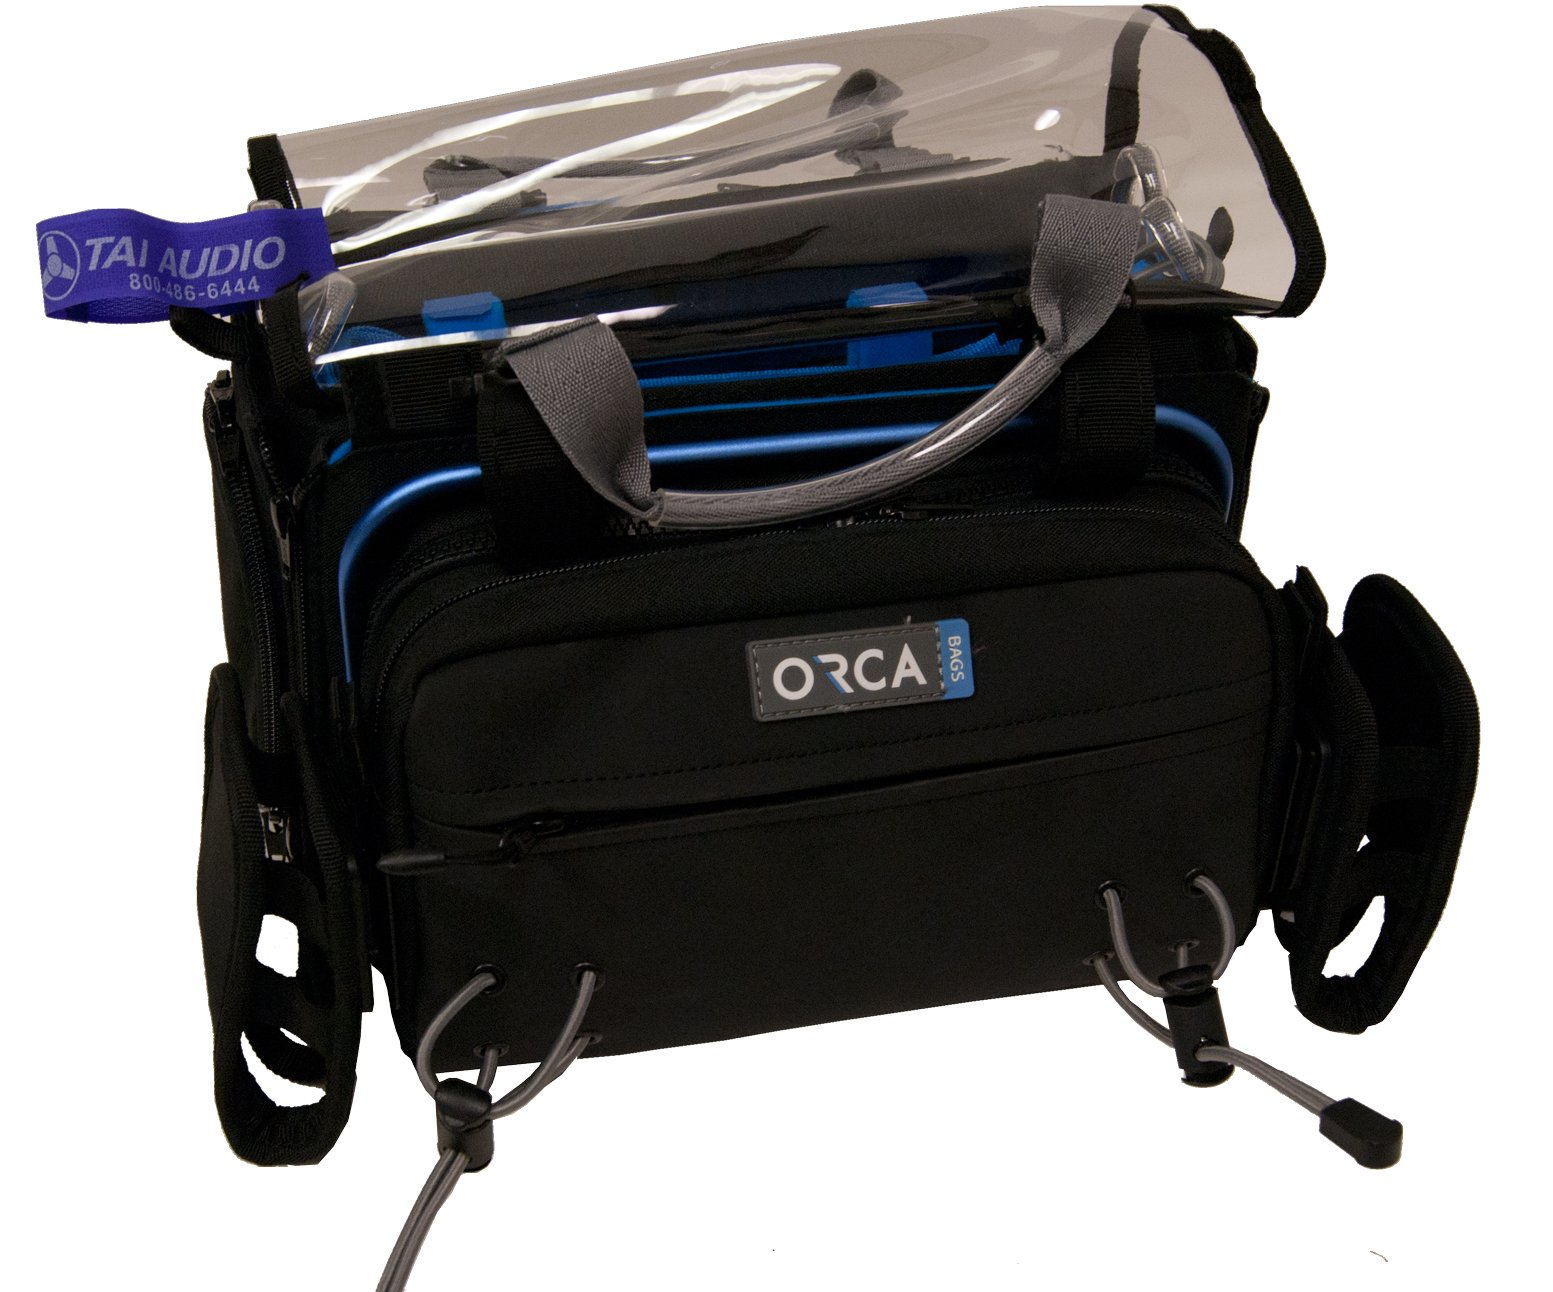 Orca OR-34 Audio Bag w/ TAI Audio Cable Strap by Orca (Image #1)